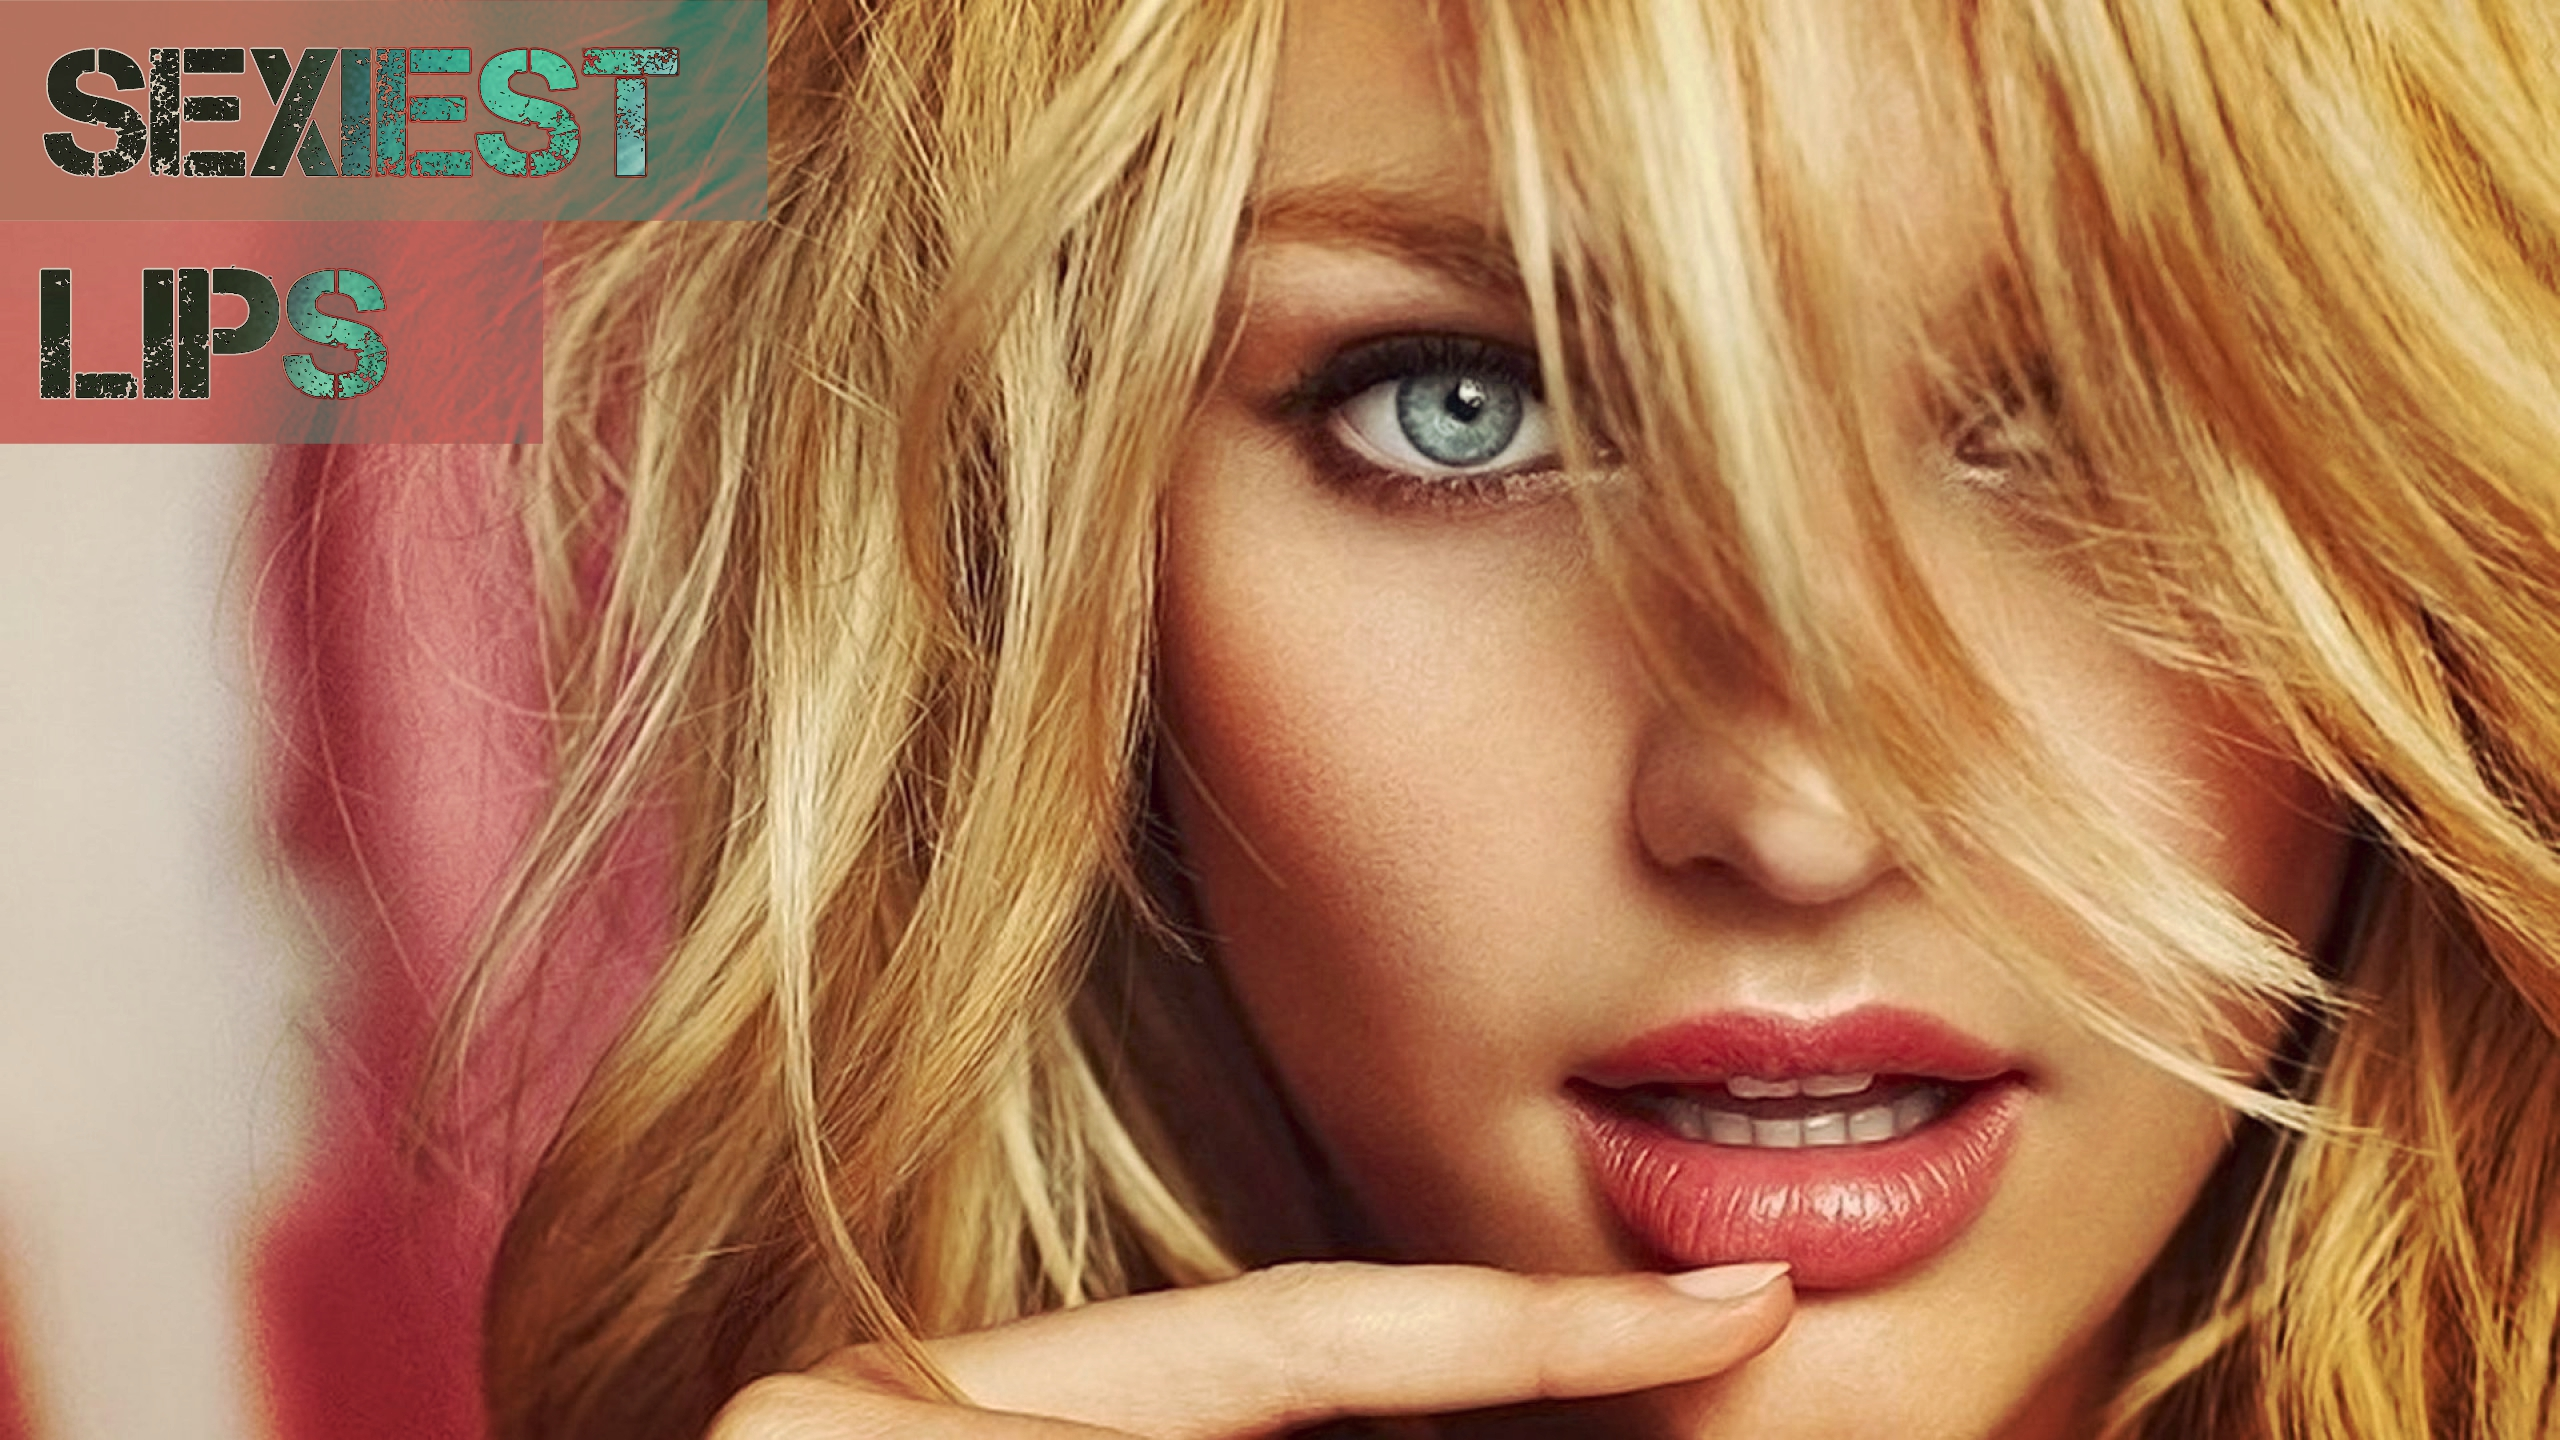 Top 10 Most Beautiful Eyes Female Celebrities - WondersList